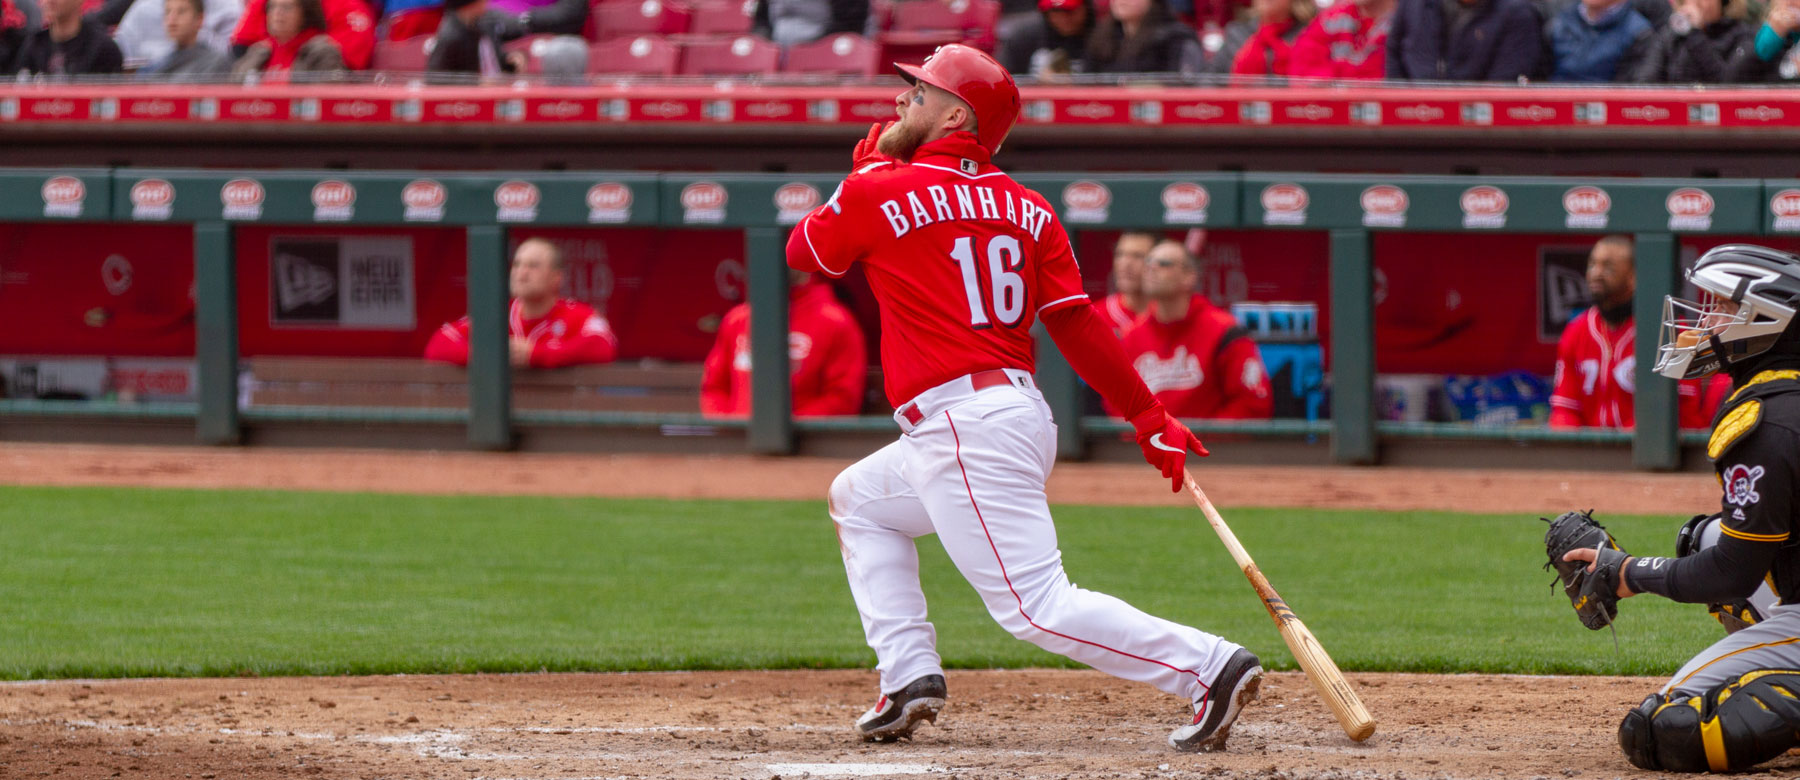 Could the Reds and Yankees be a good match for a trade? - Redleg Nation